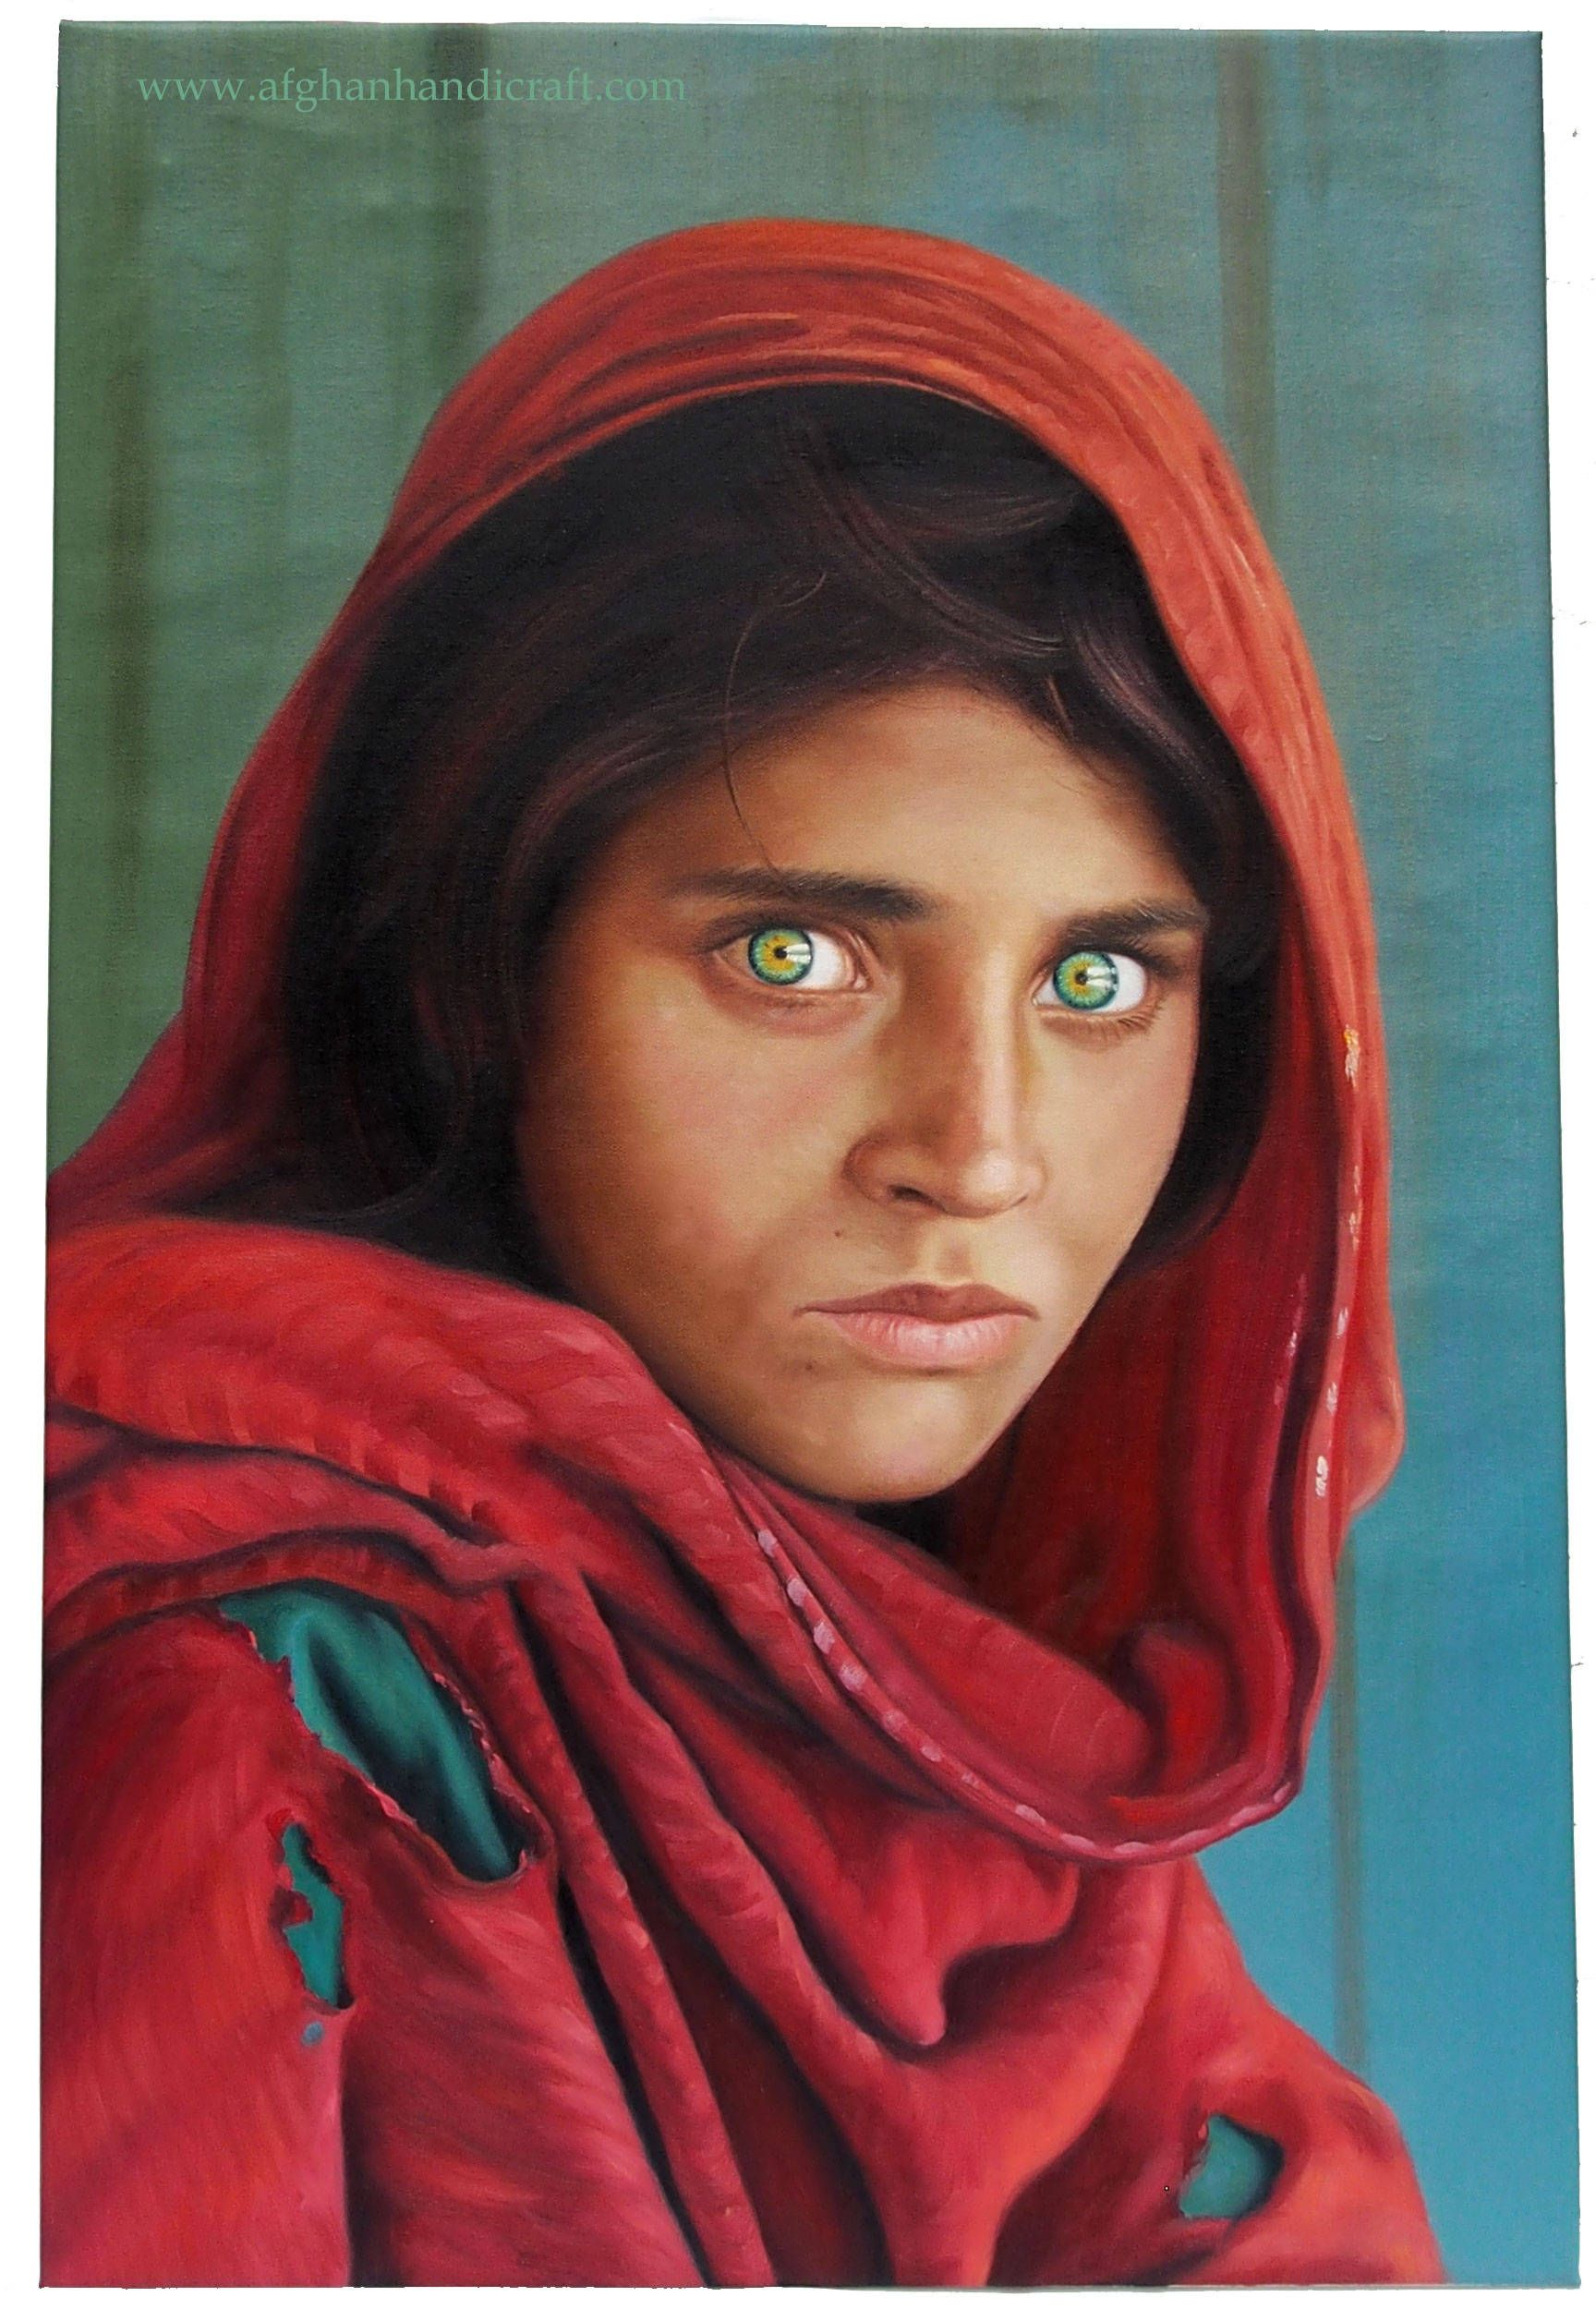 Oil painting of sharbat gula afghan girl steve mccurry afghan girl national geographic handmade oilpainting signed